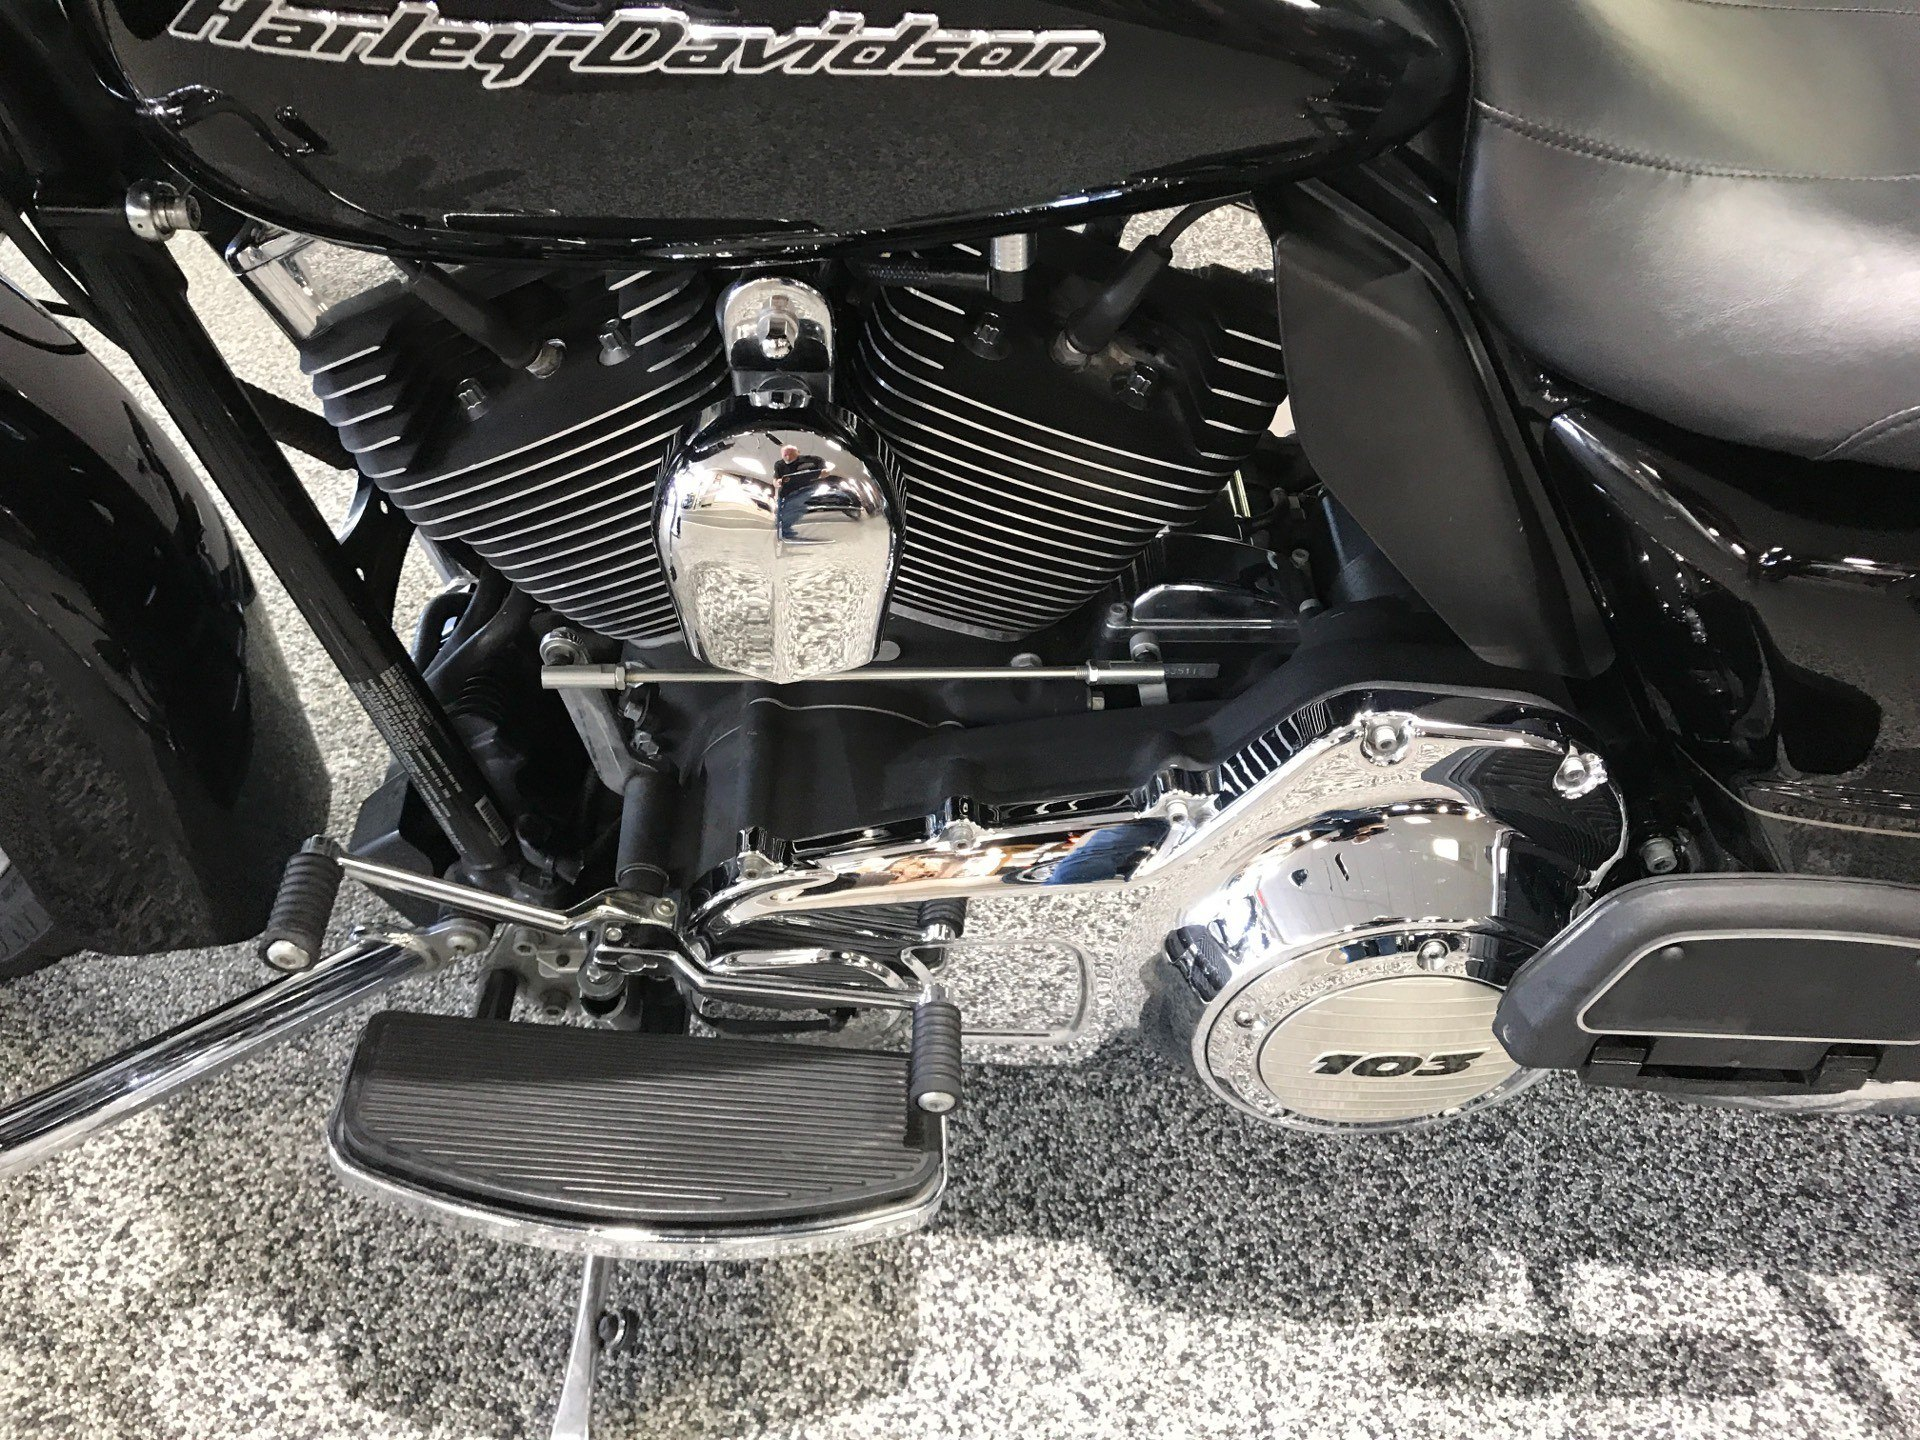 2012 Harley-Davidson Road Glide® Ultra in Knoxville, Tennessee - Photo 17